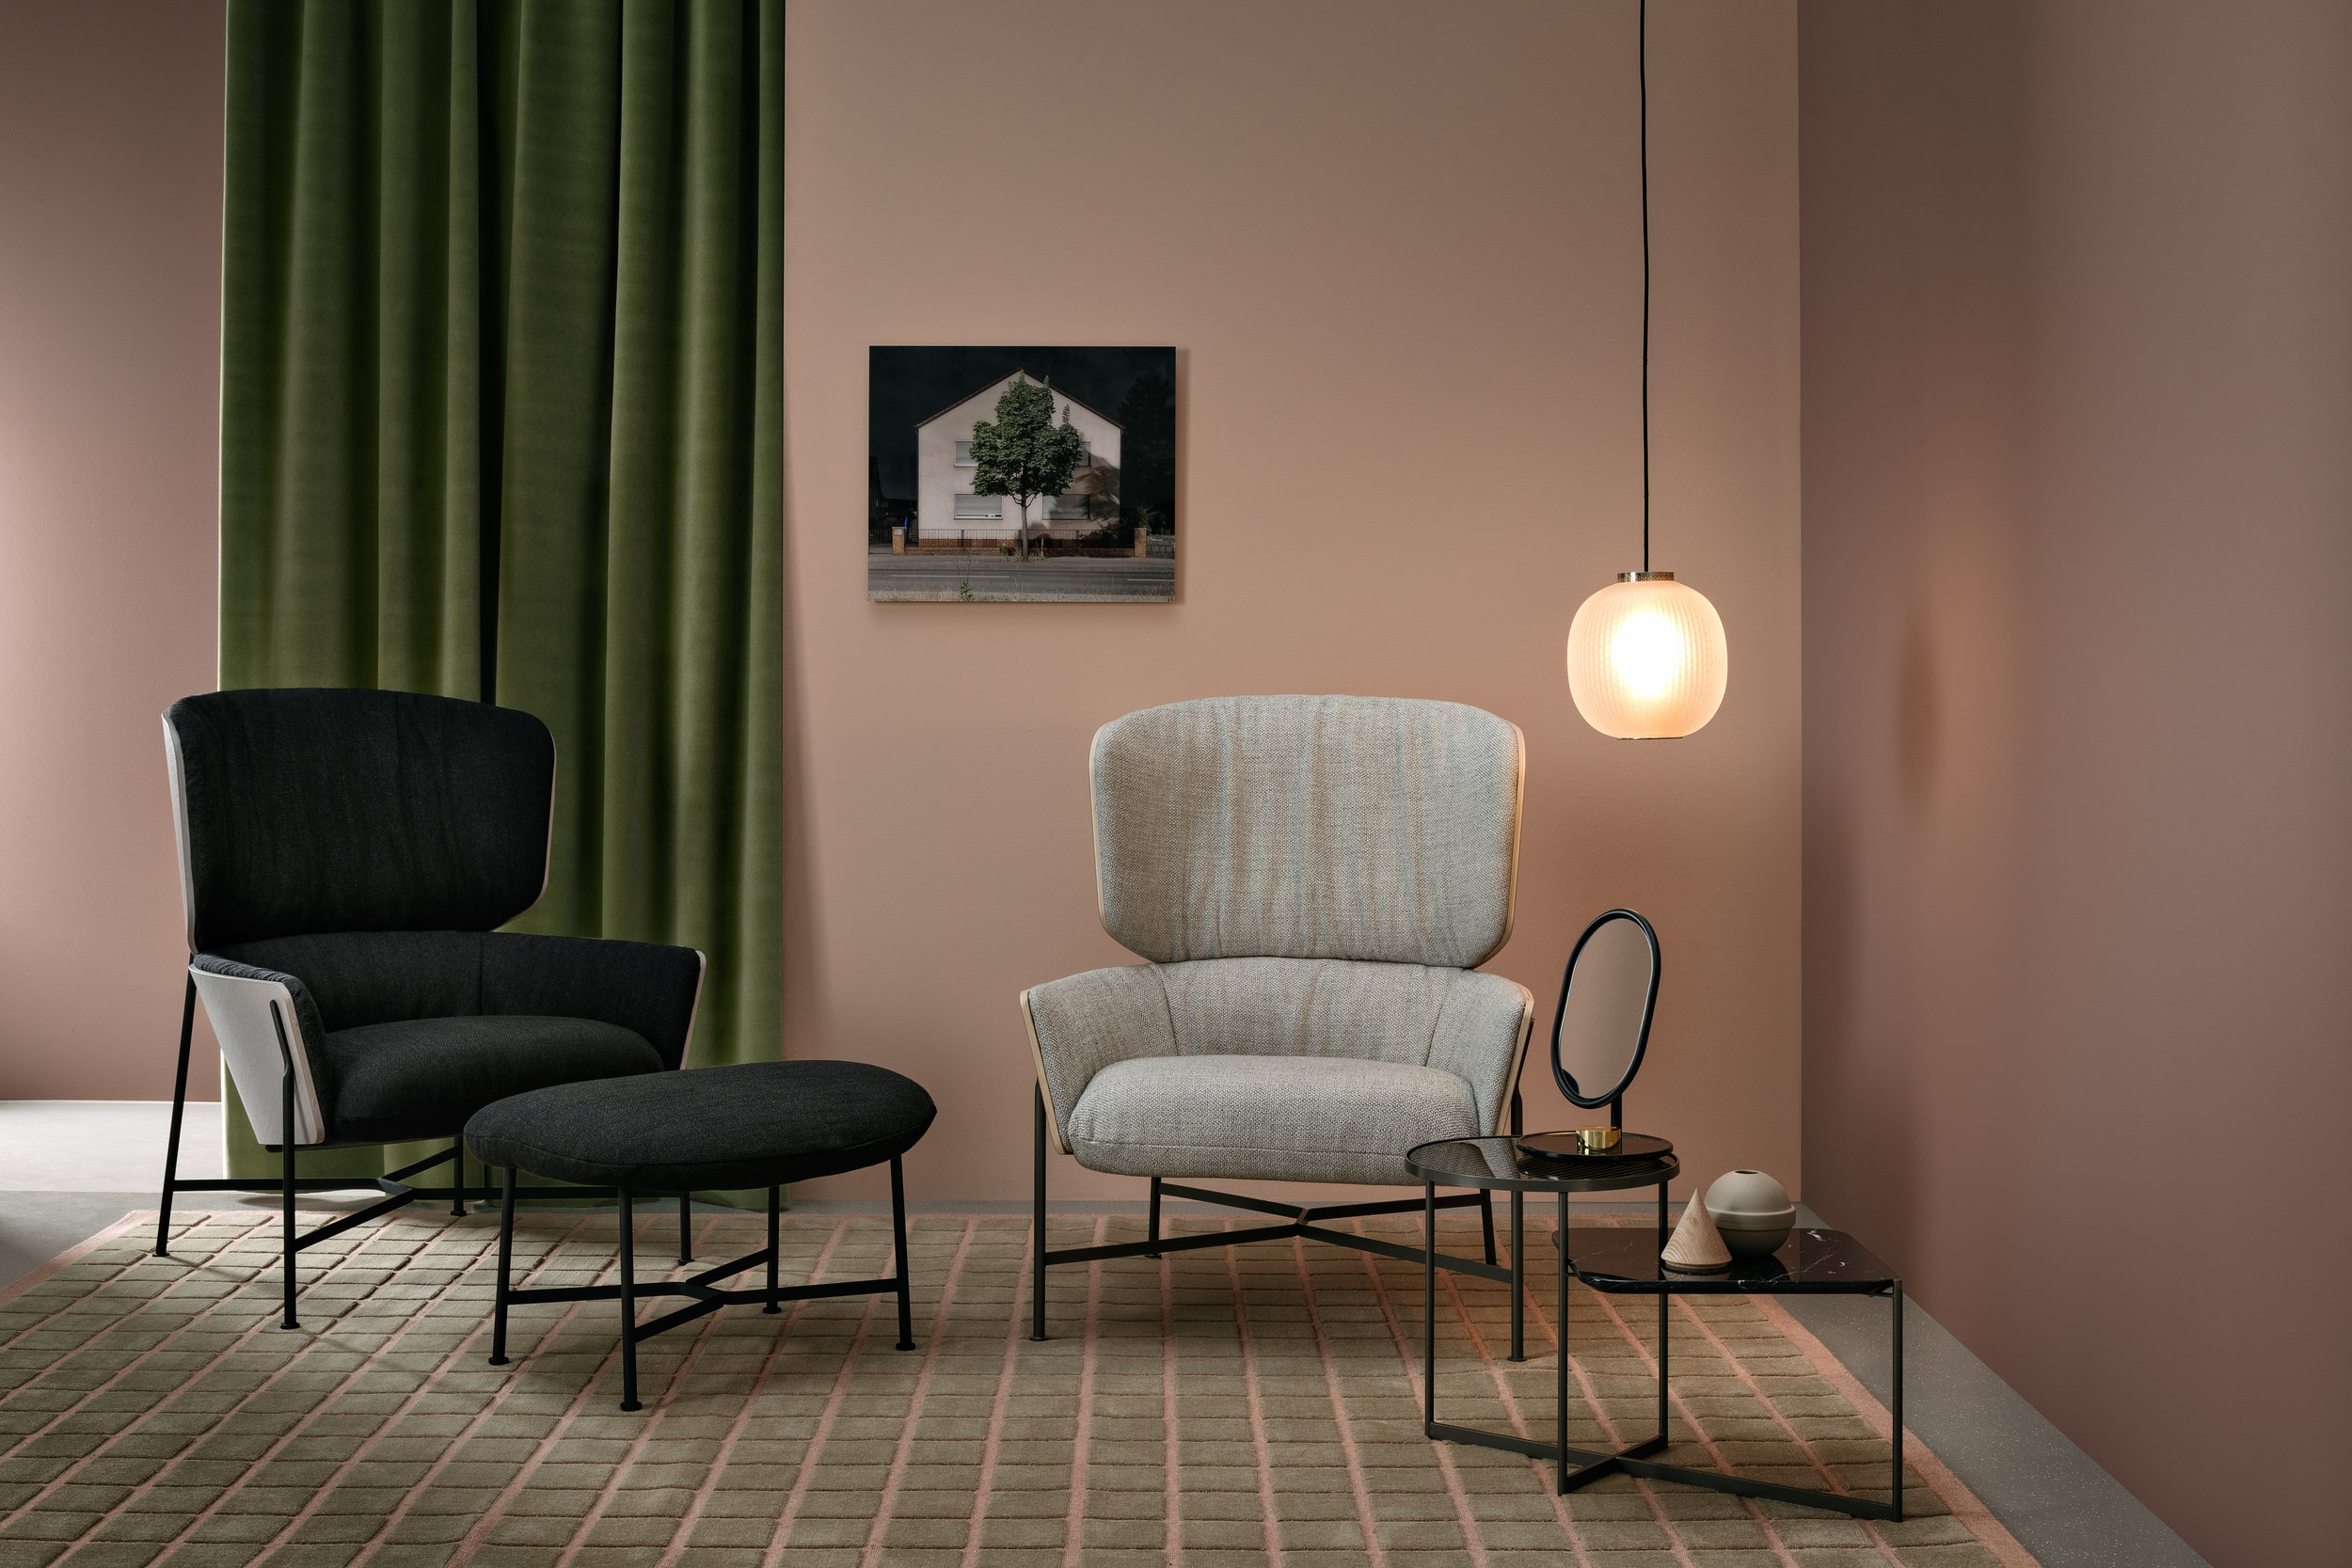 Tim Rundle's new collection for SP01 includes the Caristo armchair and ottoman, the Michelle mirror and the Mohana nest of tables, here with black frame and marble tops.